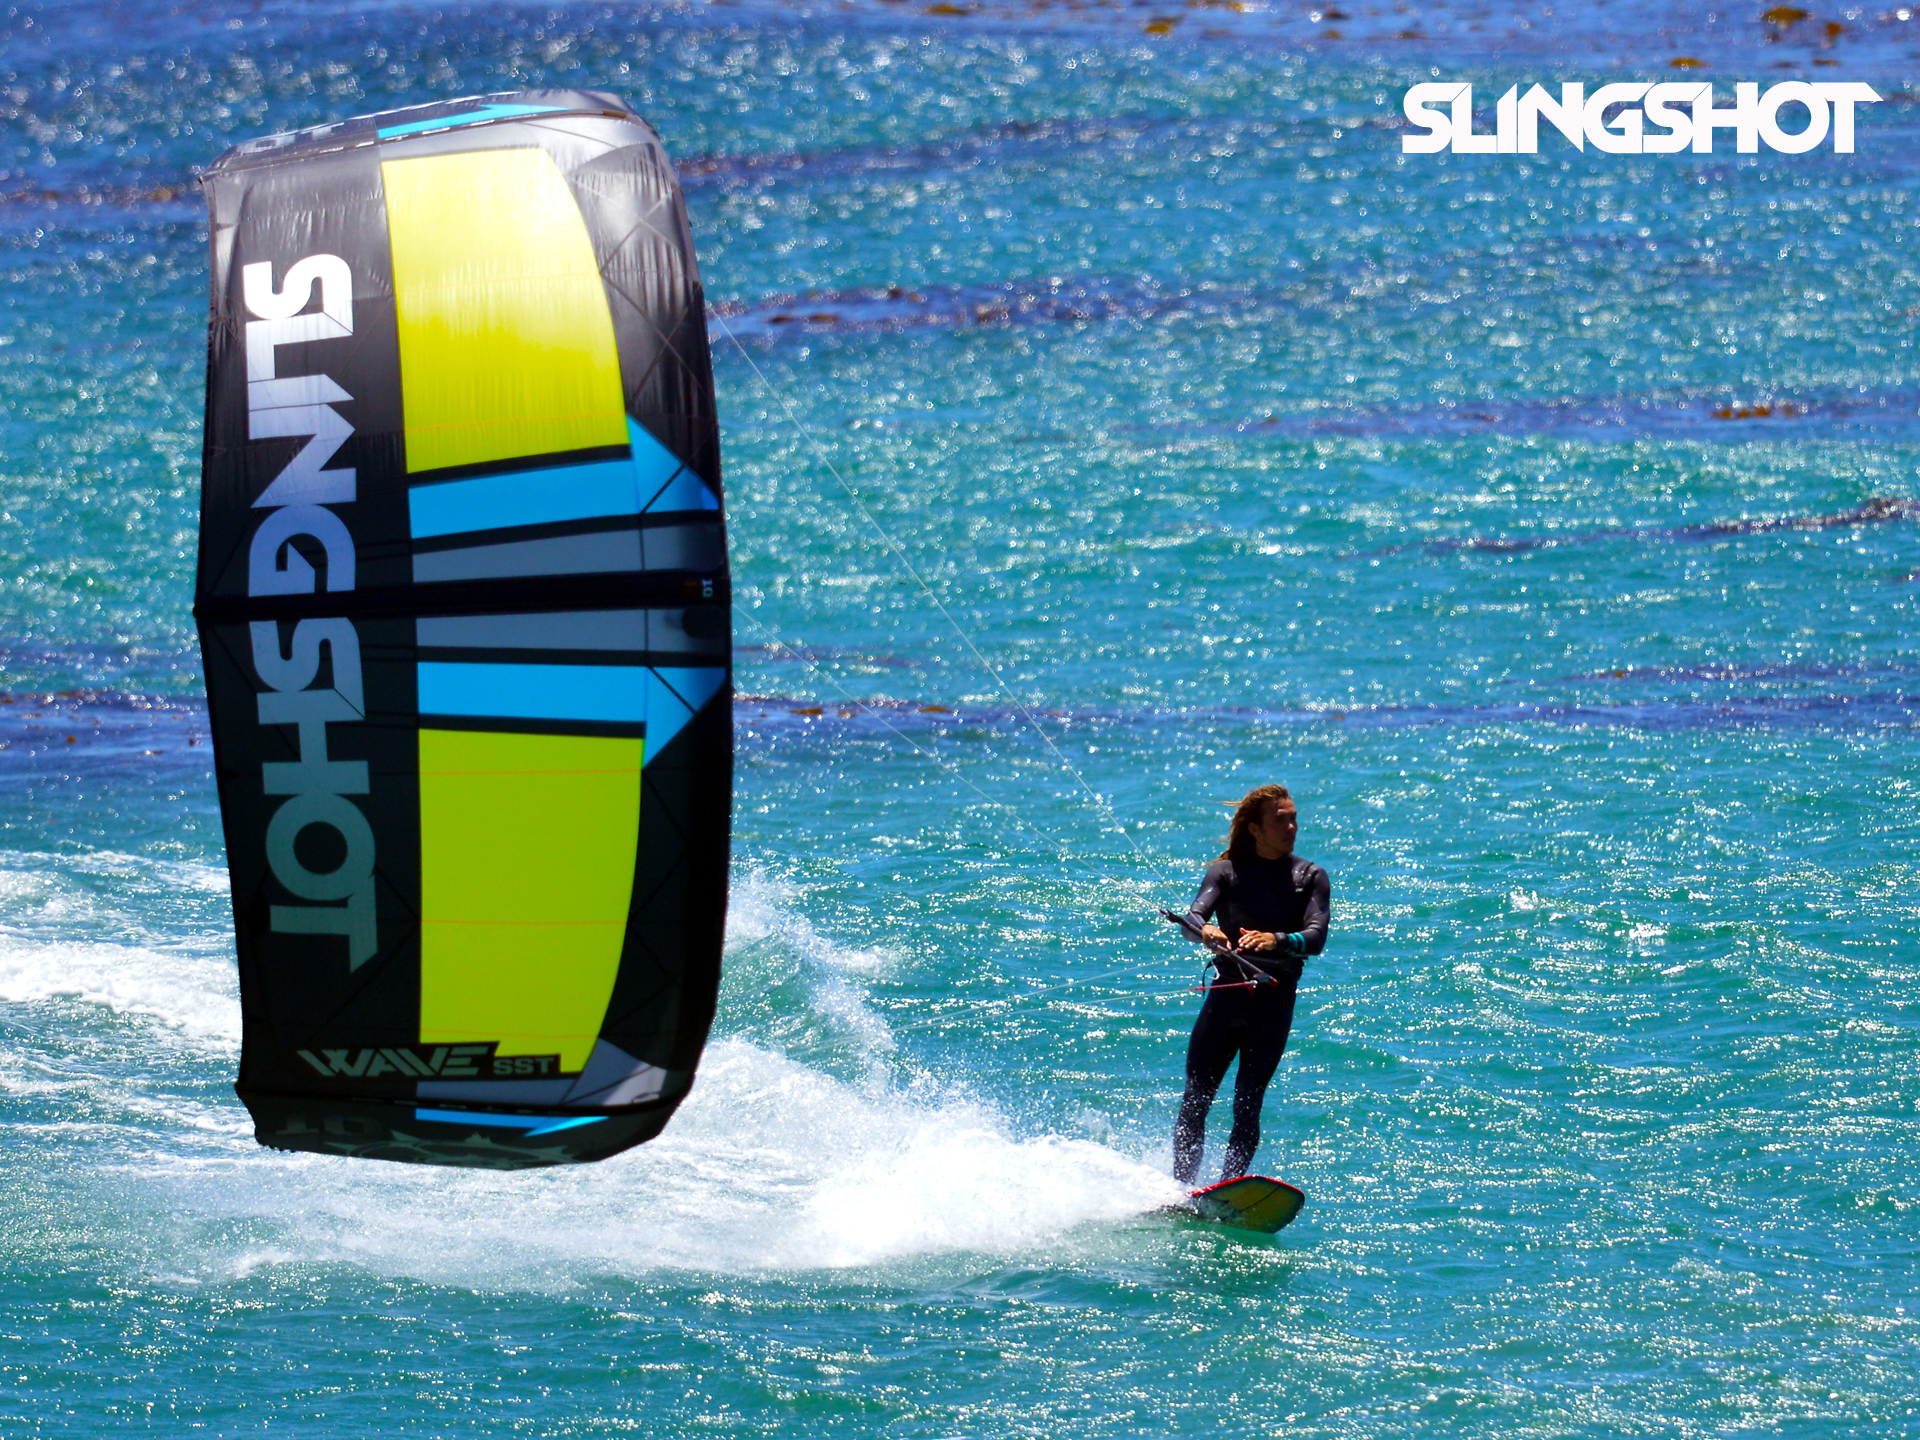 kitesurf wallpaper image - Kitesurfer Patrick Rebstock cruising on the 2016 Slingshot SST Wave kite.  - in resolution: Standard 4:3 1920 X 1440